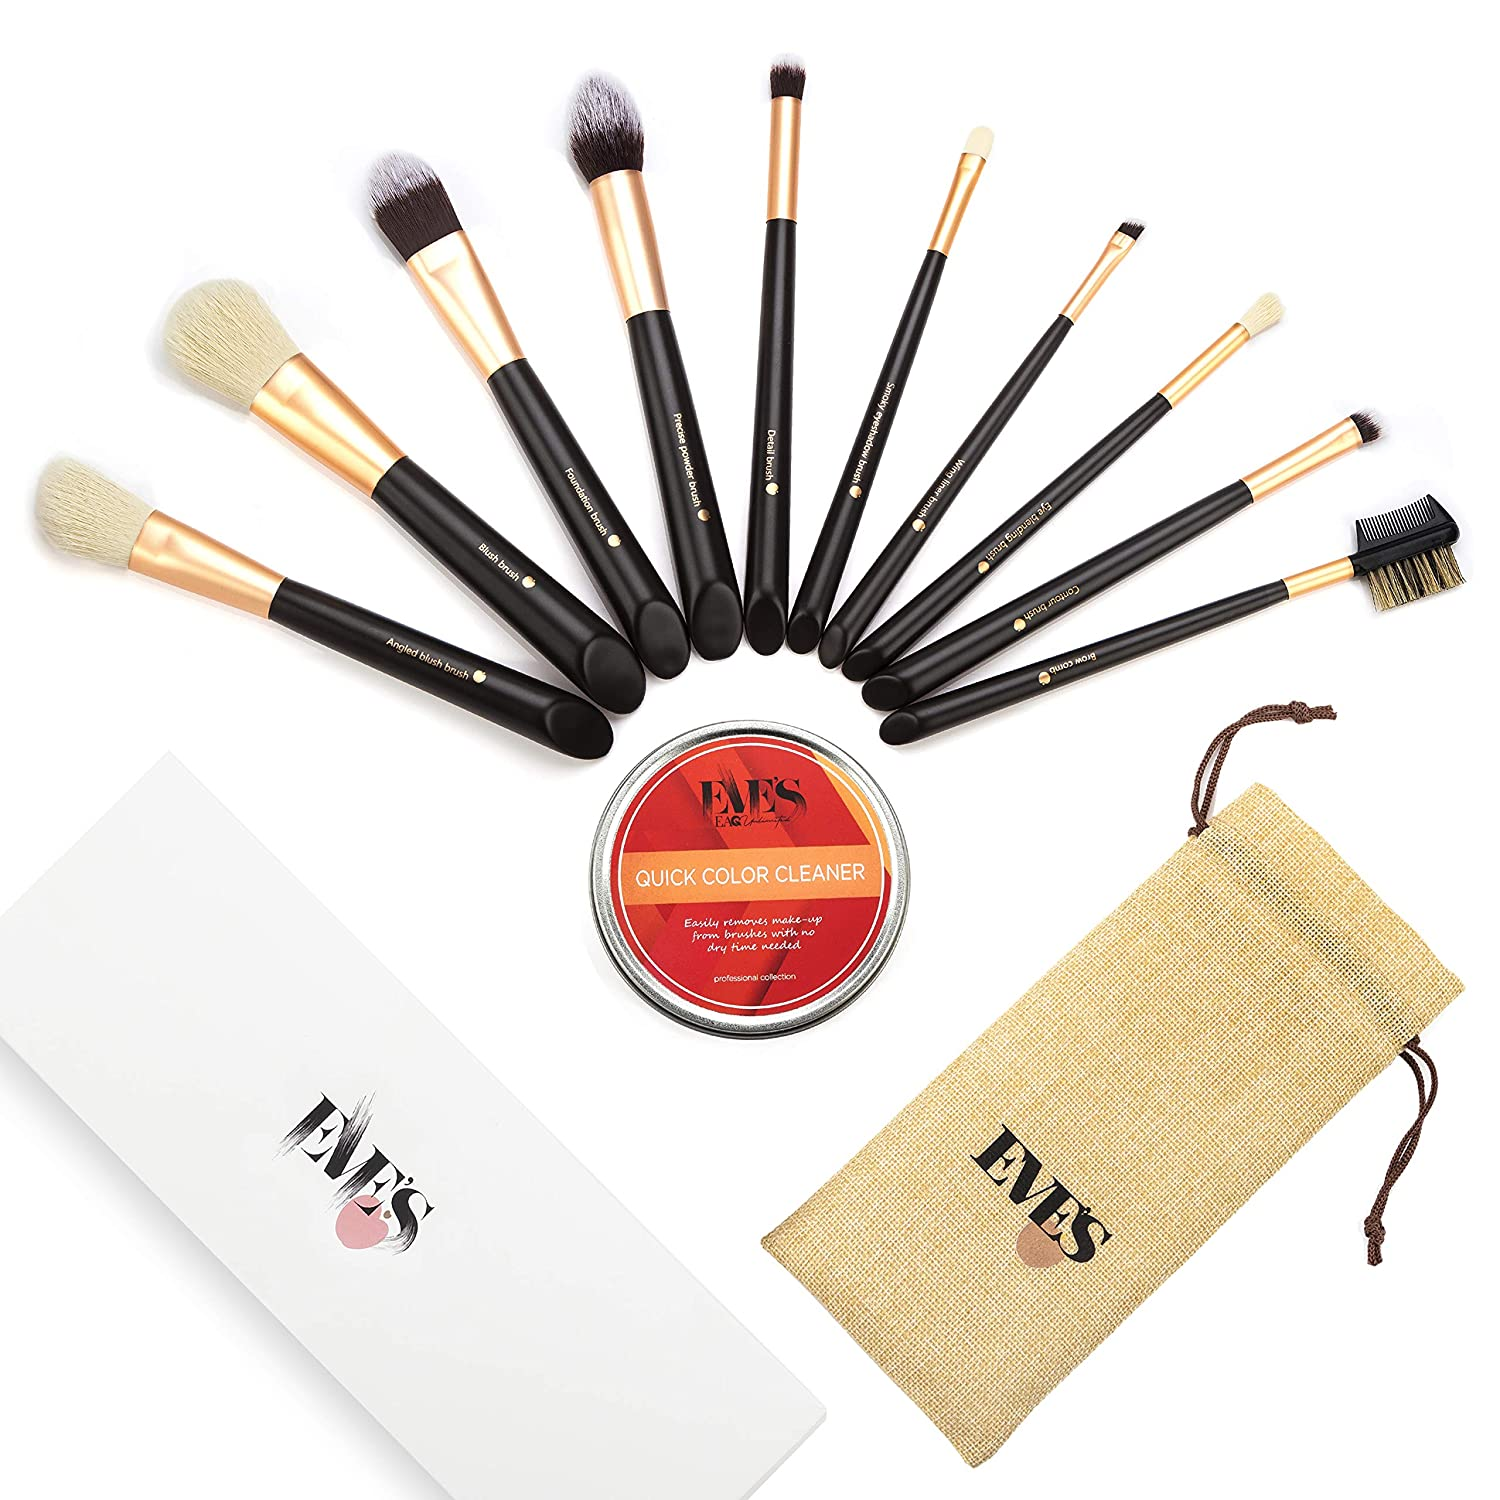 High Quality Premium Professional Cruelty-Free Synthetic 10pc Make Up Brush Set/Kit with Cosmetic Brush Color Remover/Cleaner and Travel Case-Incl. Foundation, blush,eyeshadow,contour,blender brushes & more EAQ UNLIMITED